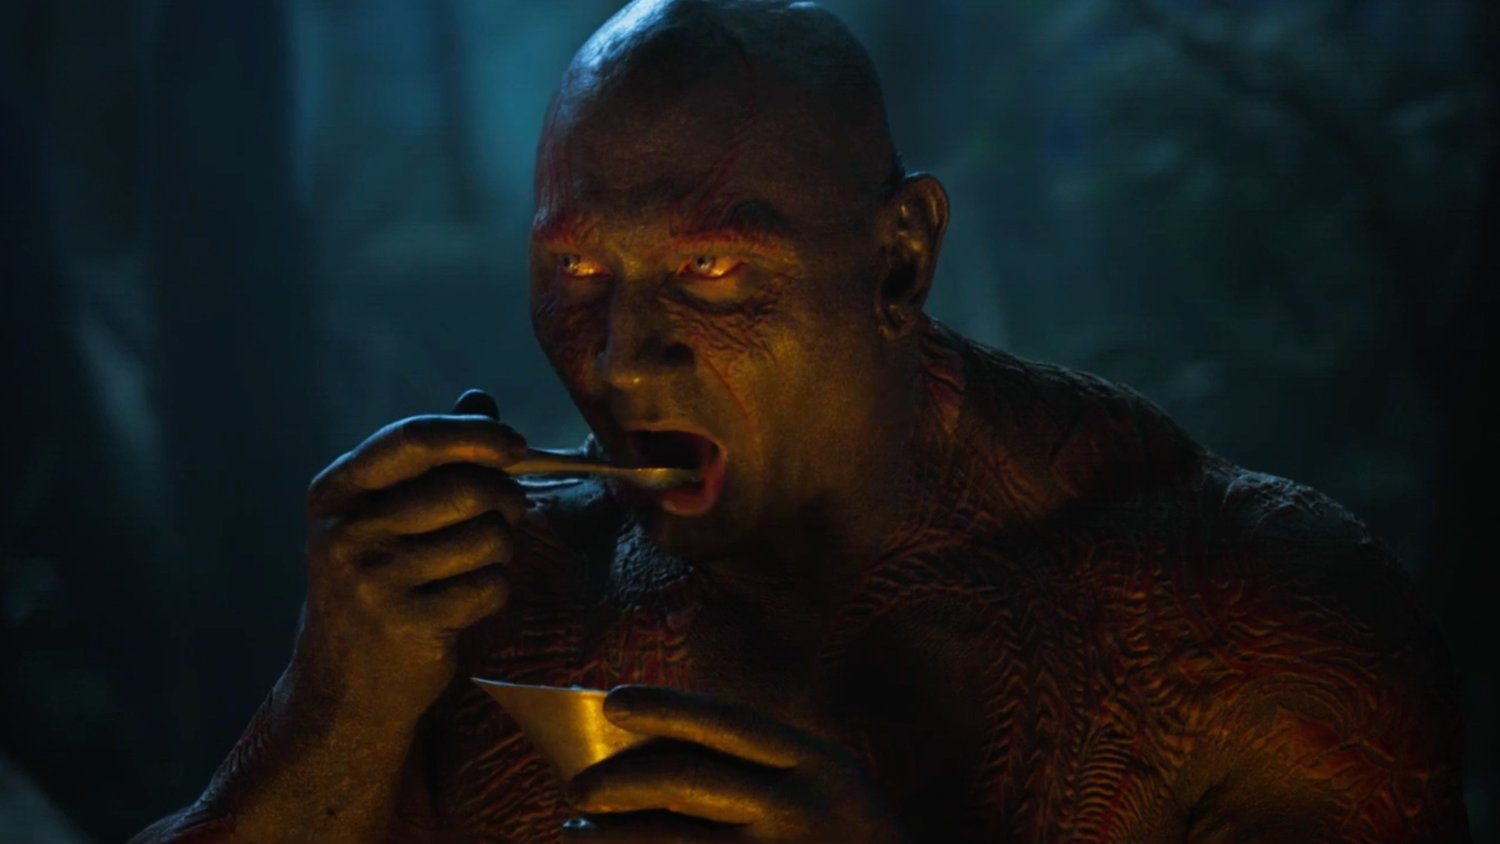 Drax is an Annoyingly Loud Eater in New GUARDIANS OF THE GALAXY VOL. 2 Teaser